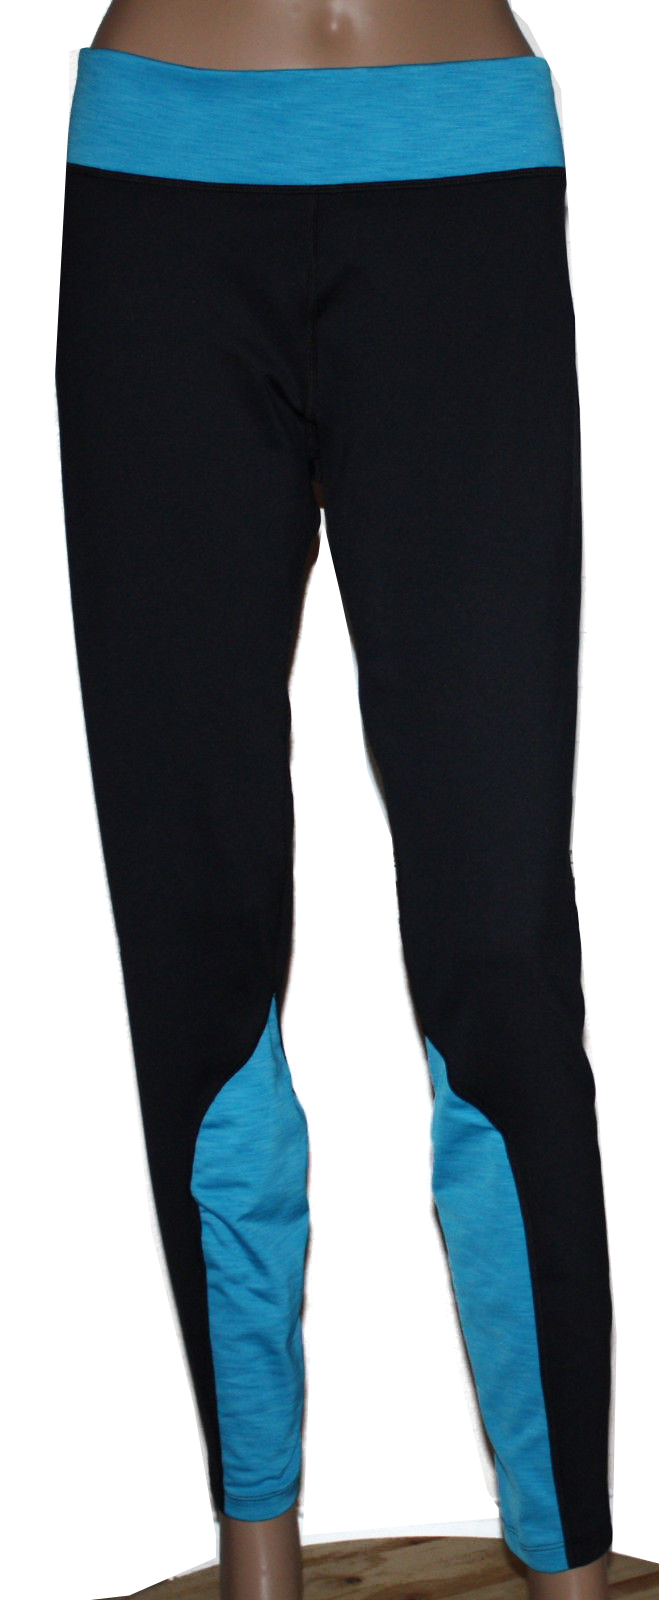 Under Armour Coldgear Women's Black/Pirate Blue Fitted Pants (X-Large) 10001